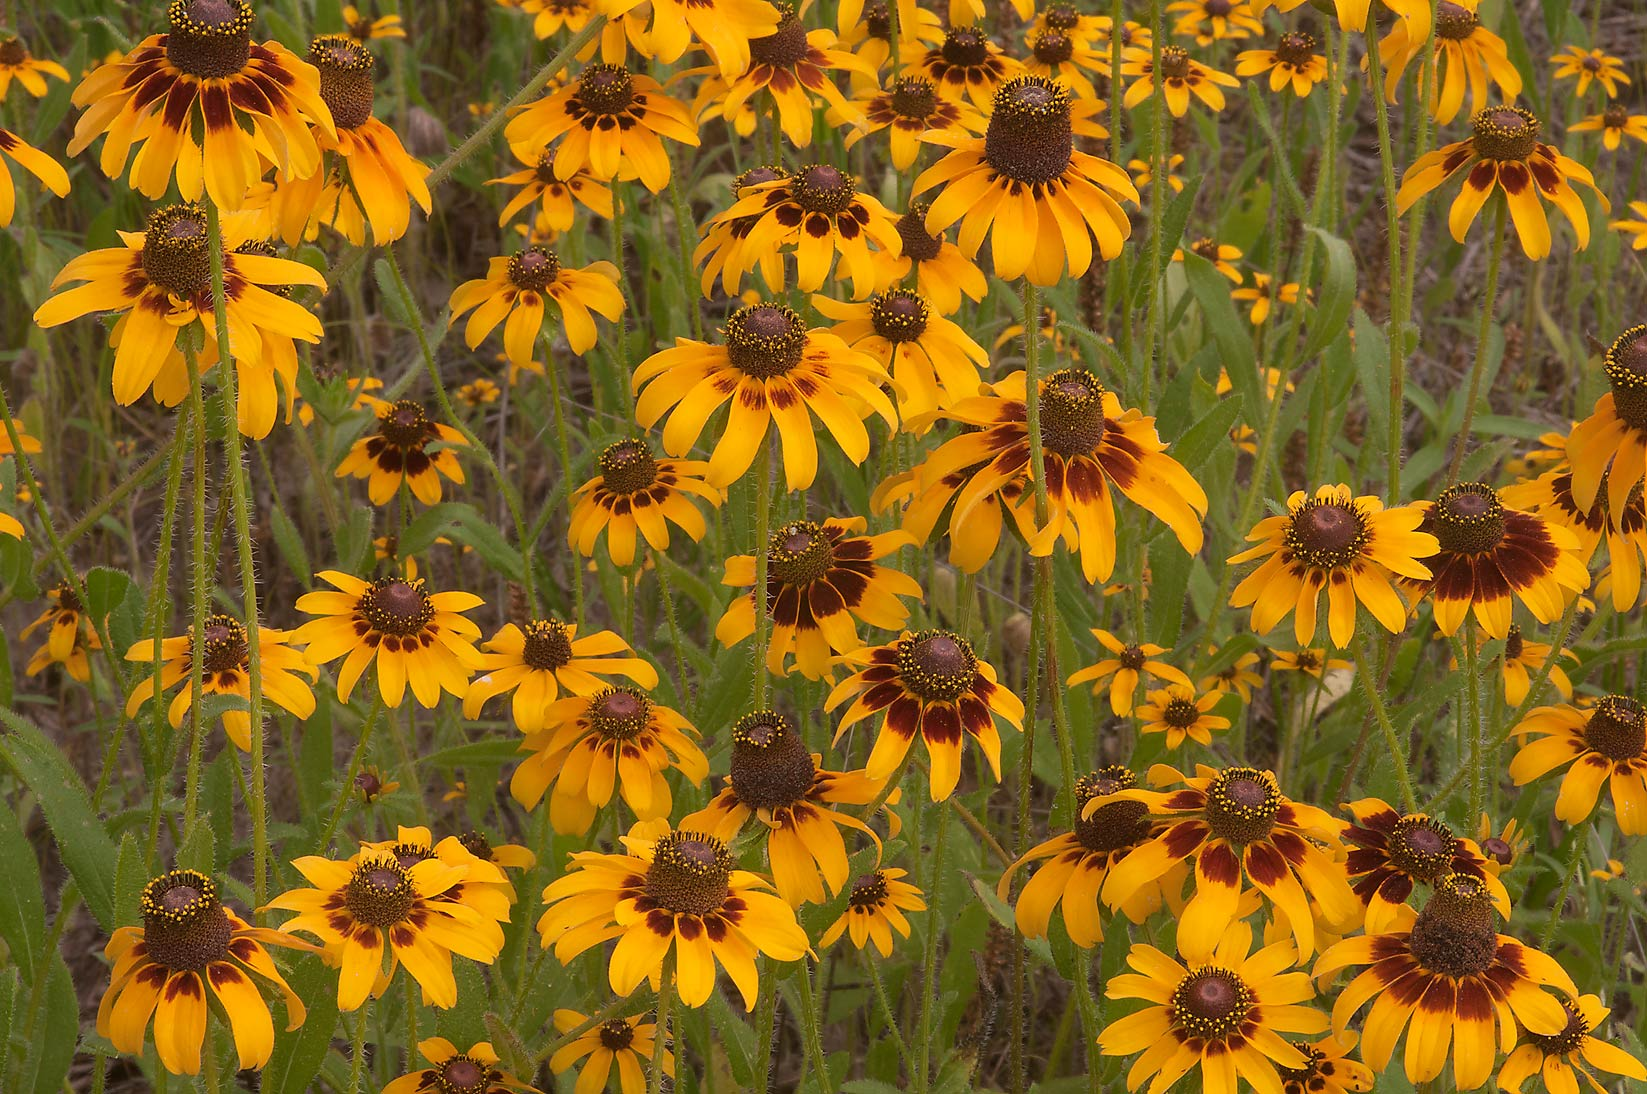 Photo 1052 03 Yellow Flowers Of Black Eyed Susan At Equestrian